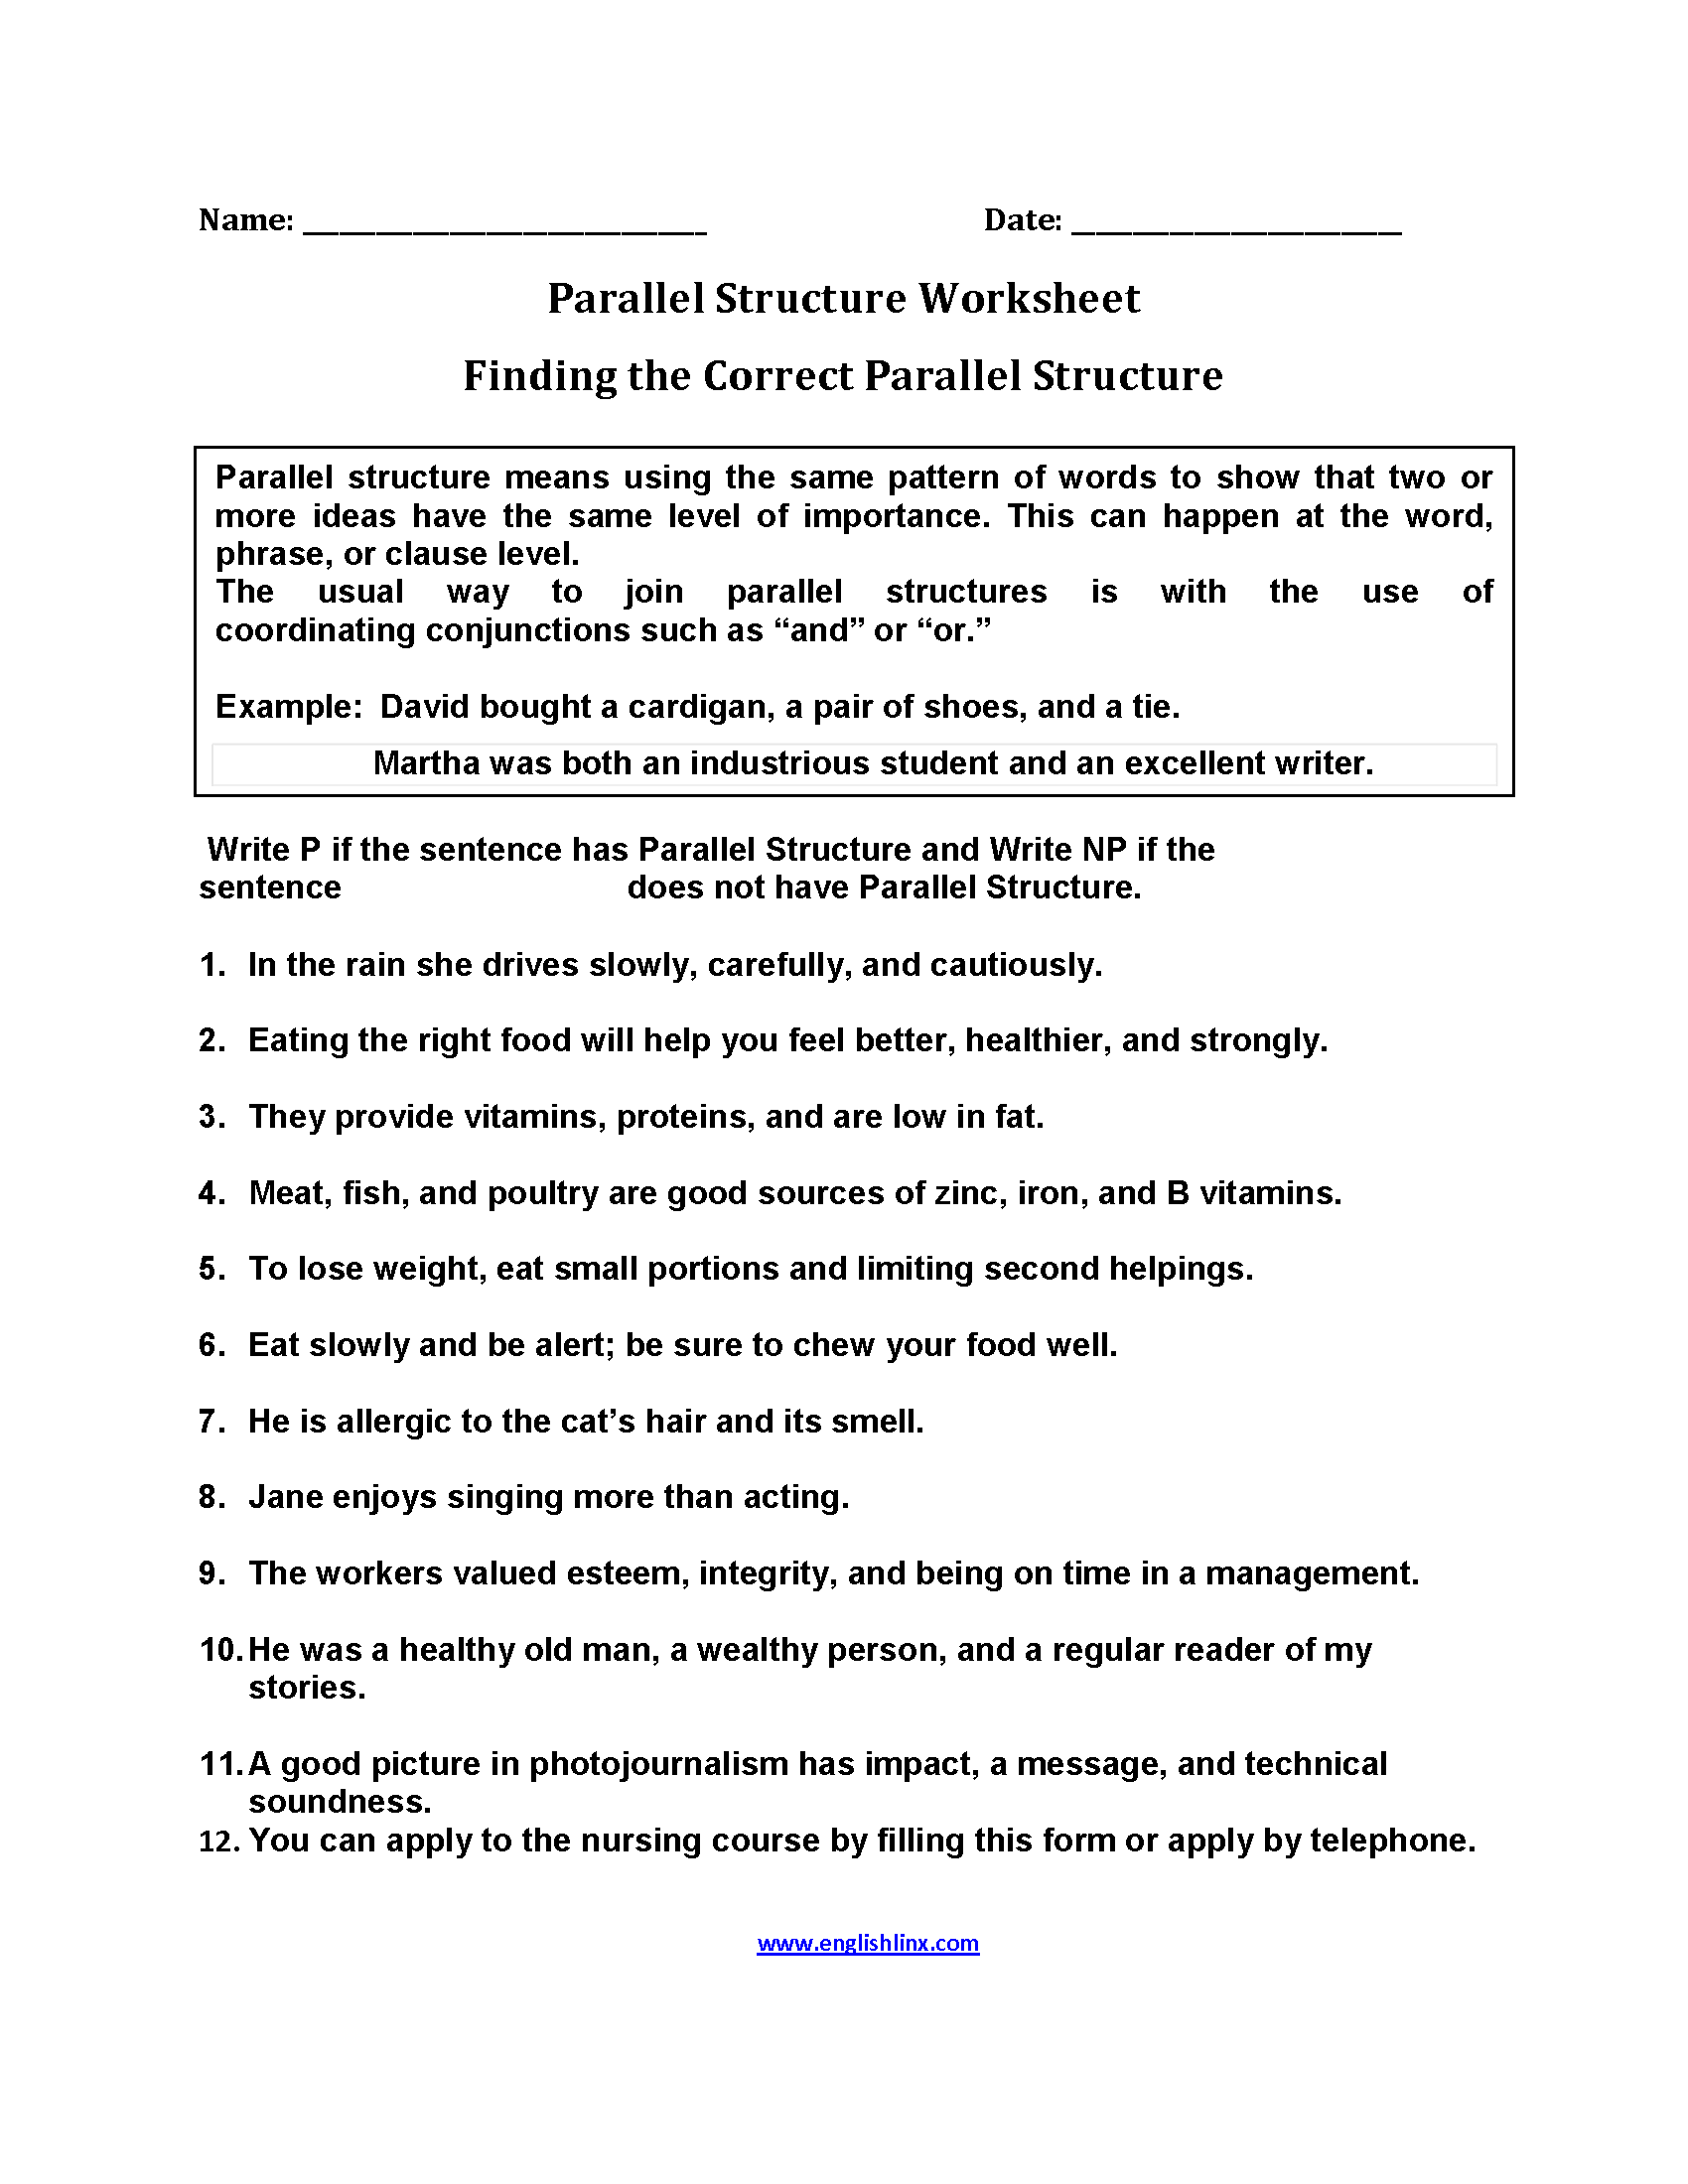 Finding Parallel Structure Worksheets   Text structure worksheets [ 2200 x 1700 Pixel ]